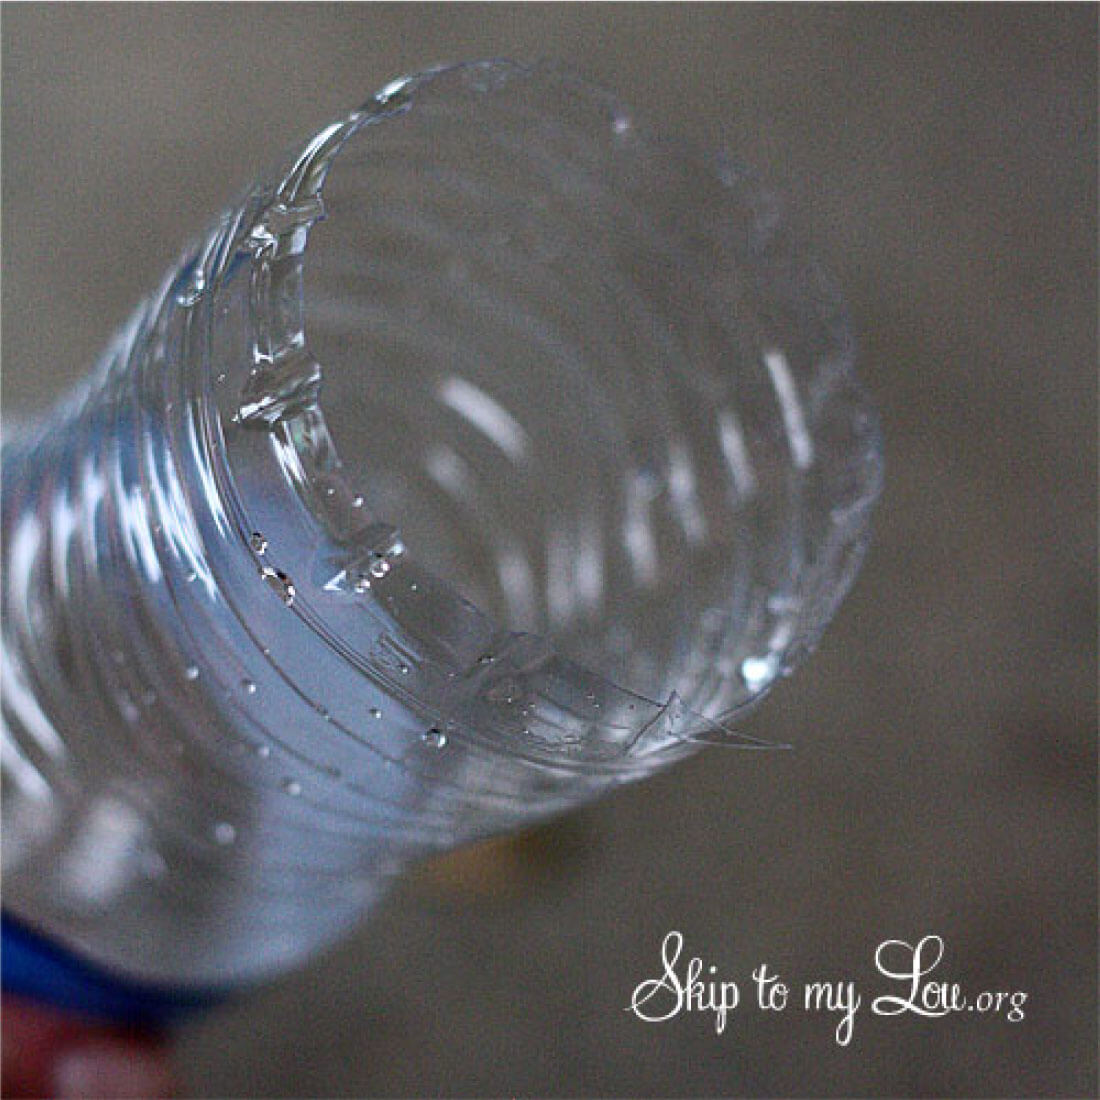 DIY Bubble Blower - Cut the bottom off of the empty water bottle.